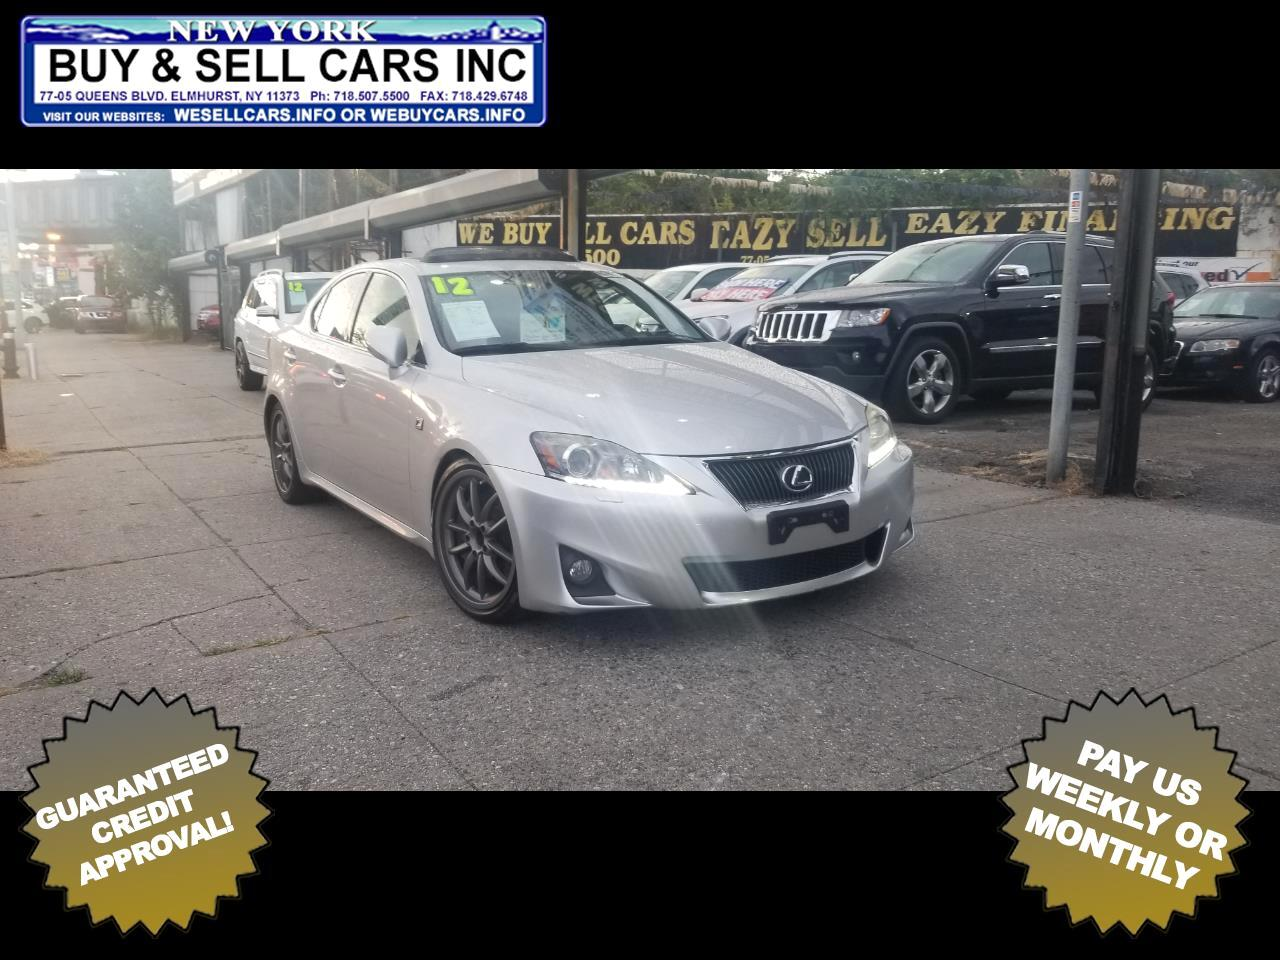 2012 Lexus IS 350 4dr Sdn AWD